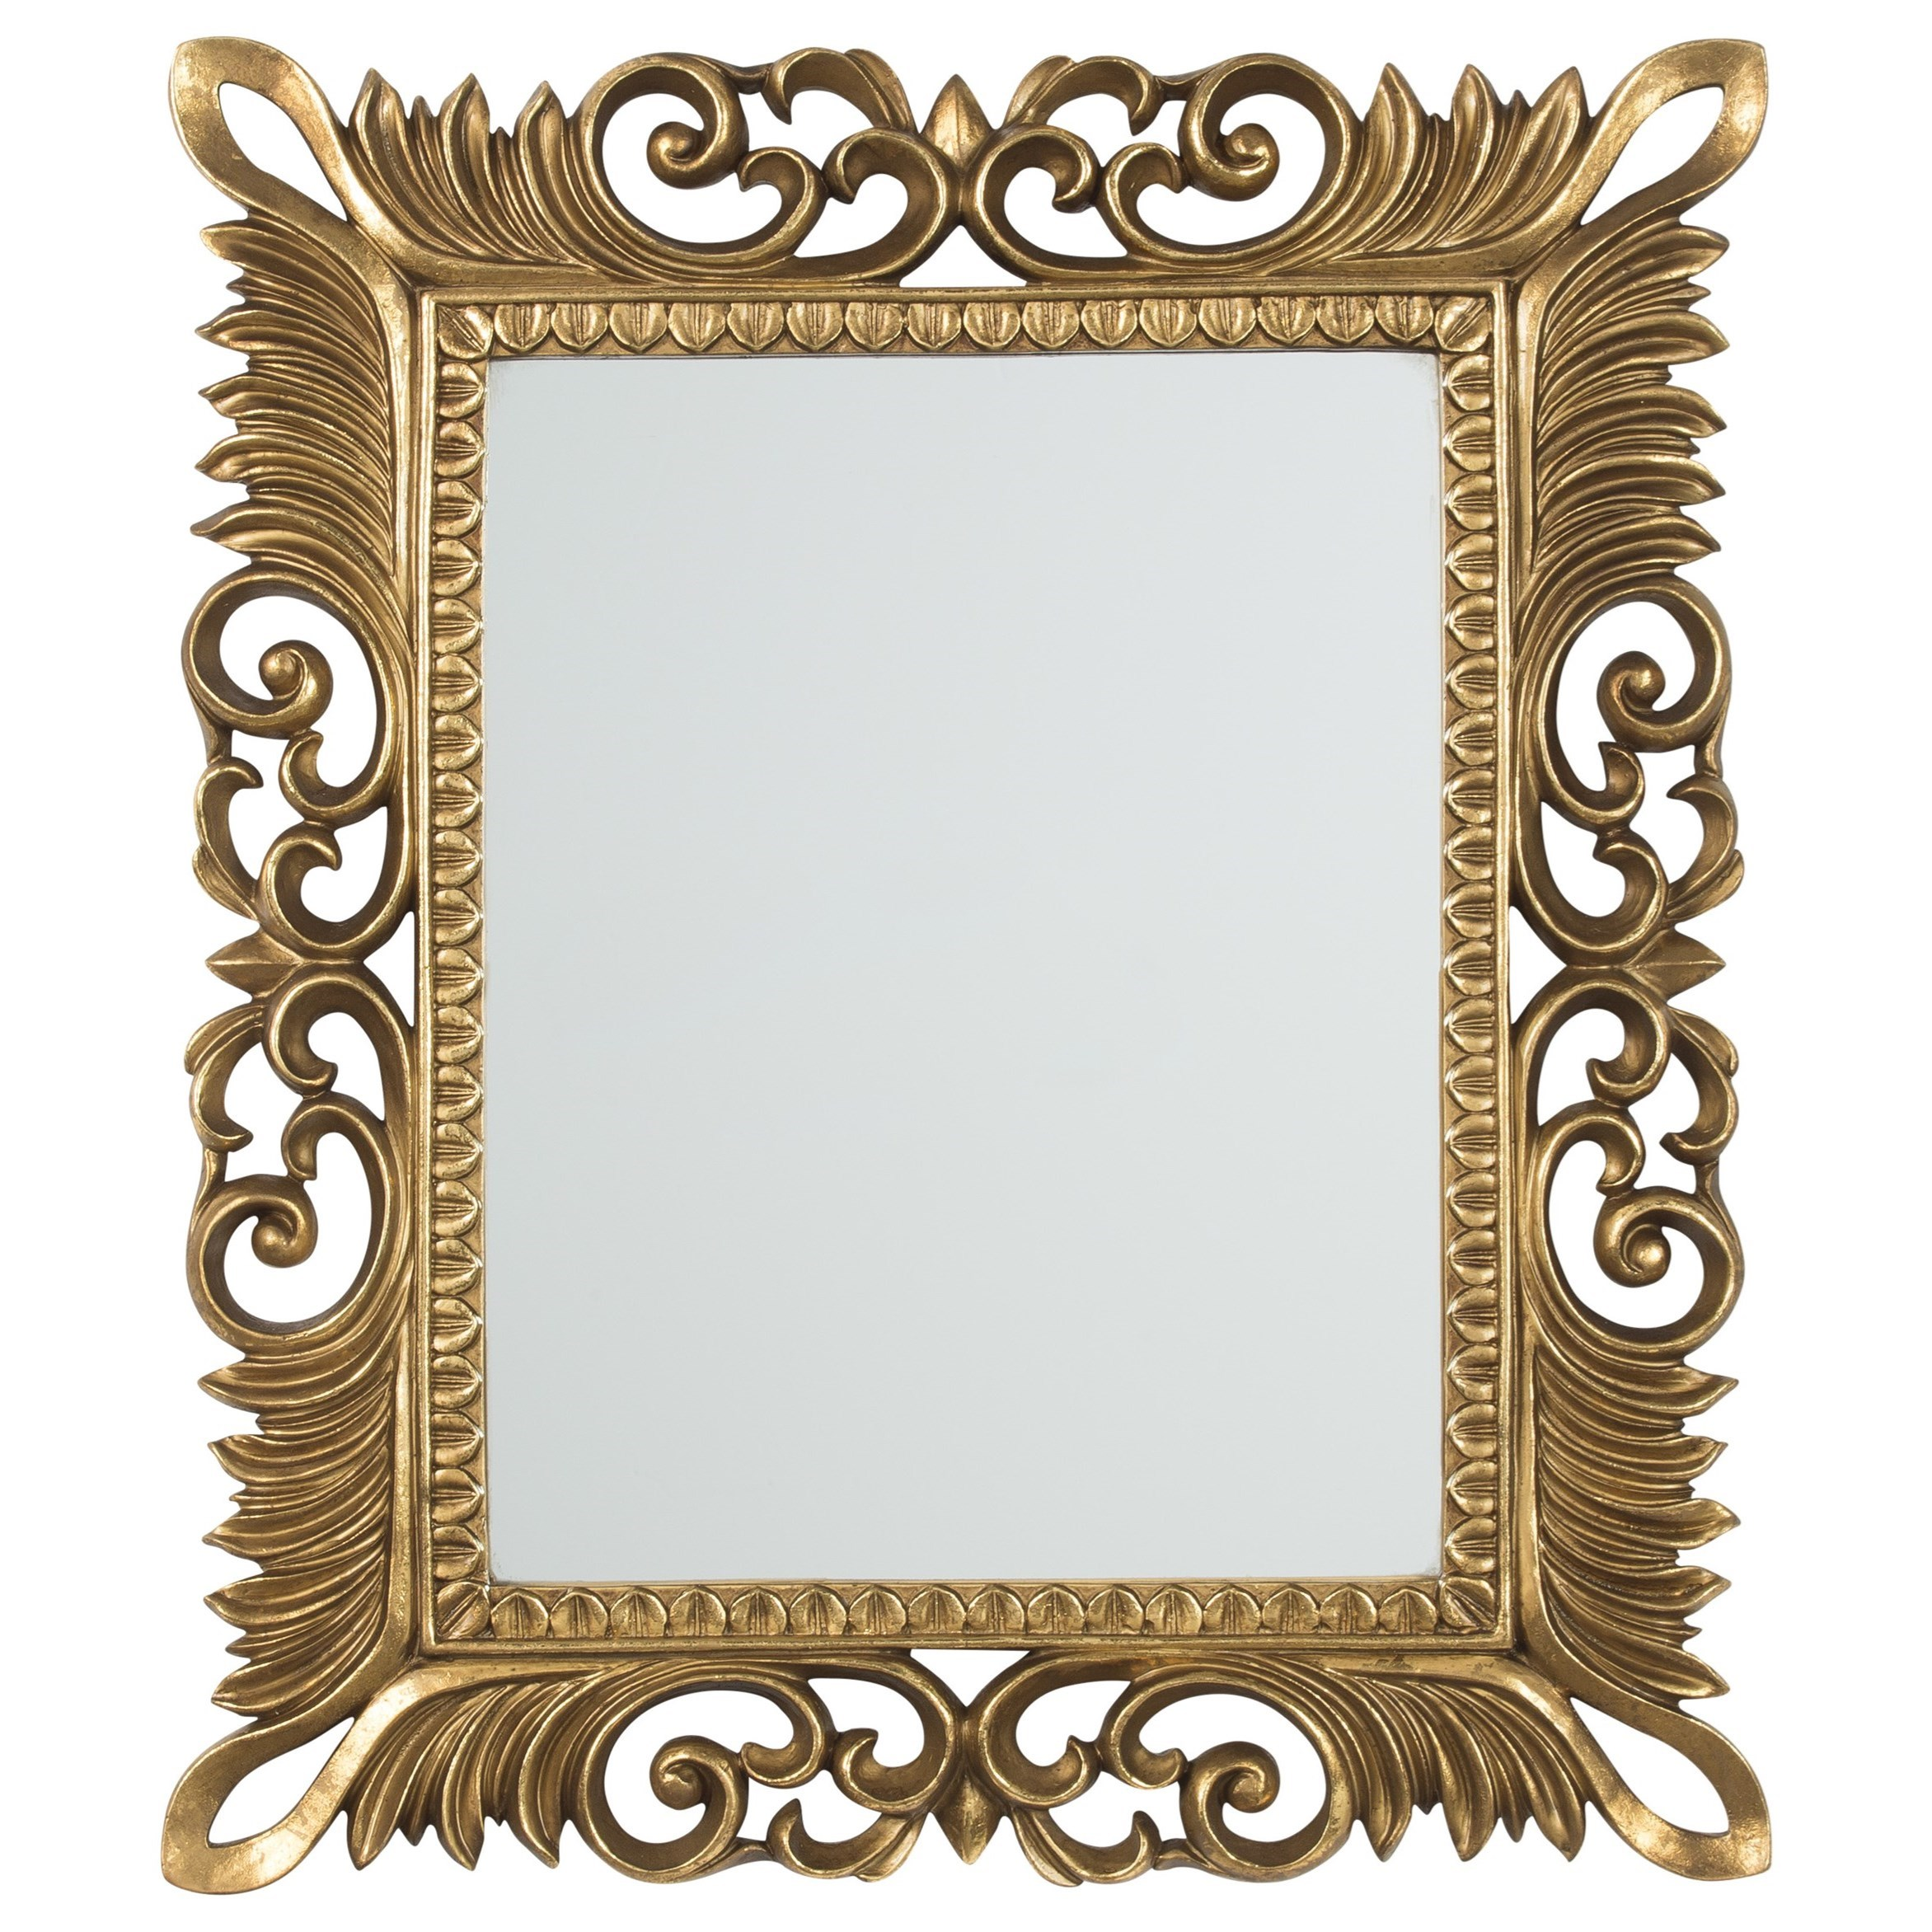 Signature Design by Ashley Accent Mirrors Denisha Antique Gold Finish Accent Mirror - Item Number: A8010049